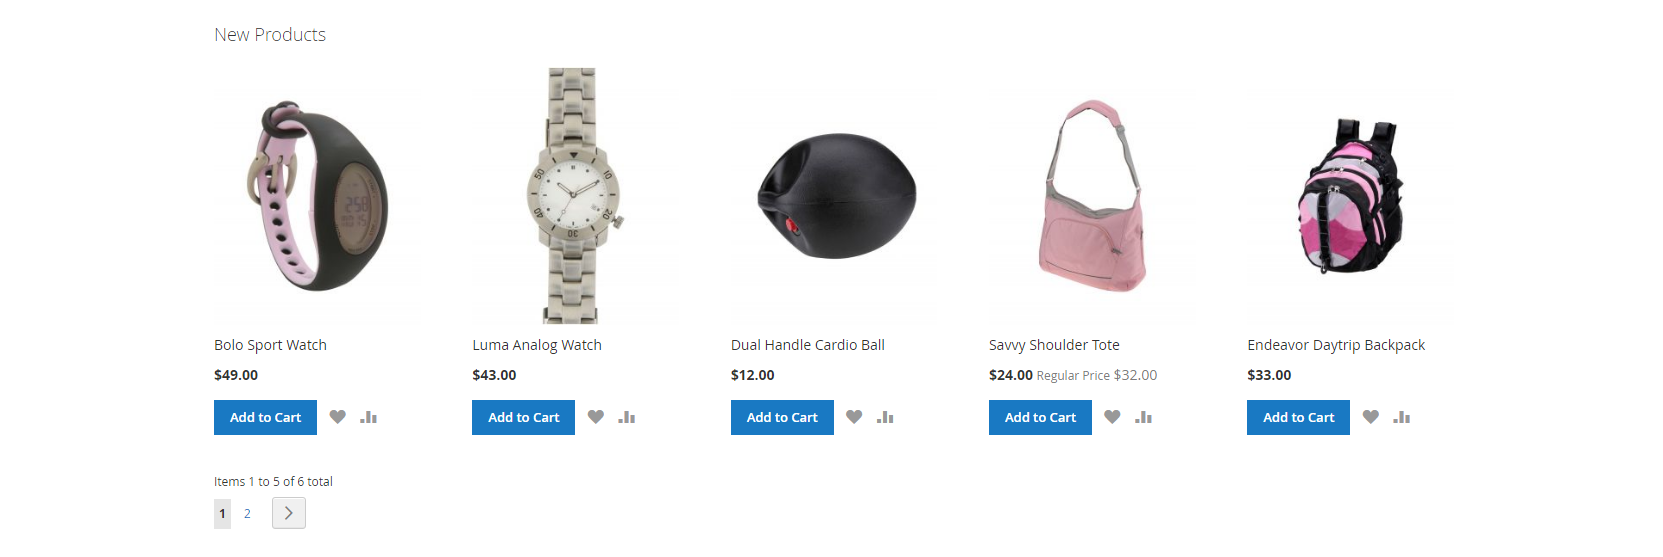 New Products List on Home Page